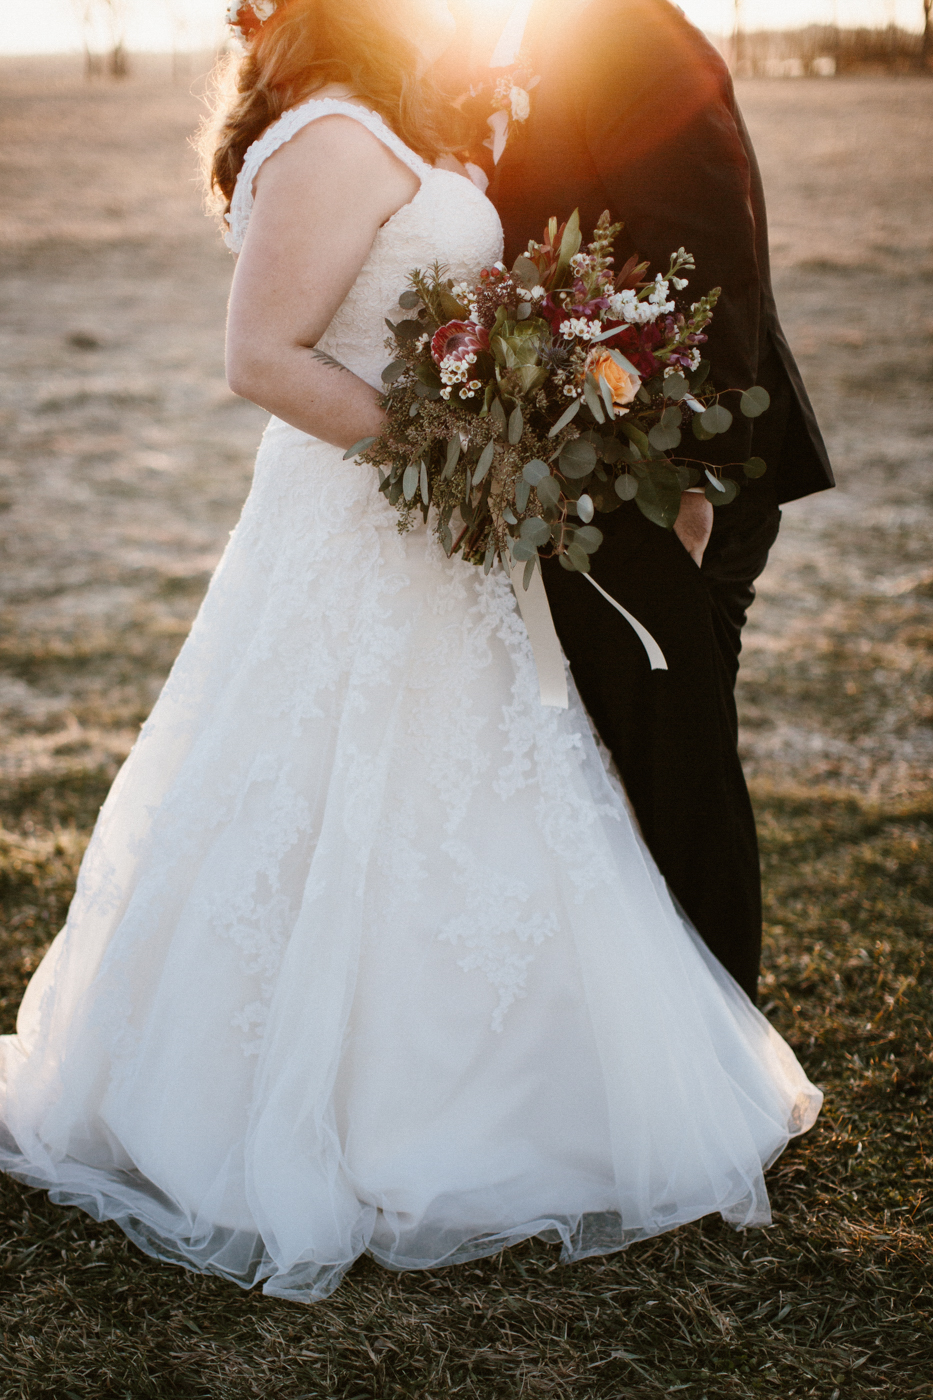 Matt&Amanda_SiouxFalls_DesMoines_Wedding_Photographer_17.jpg